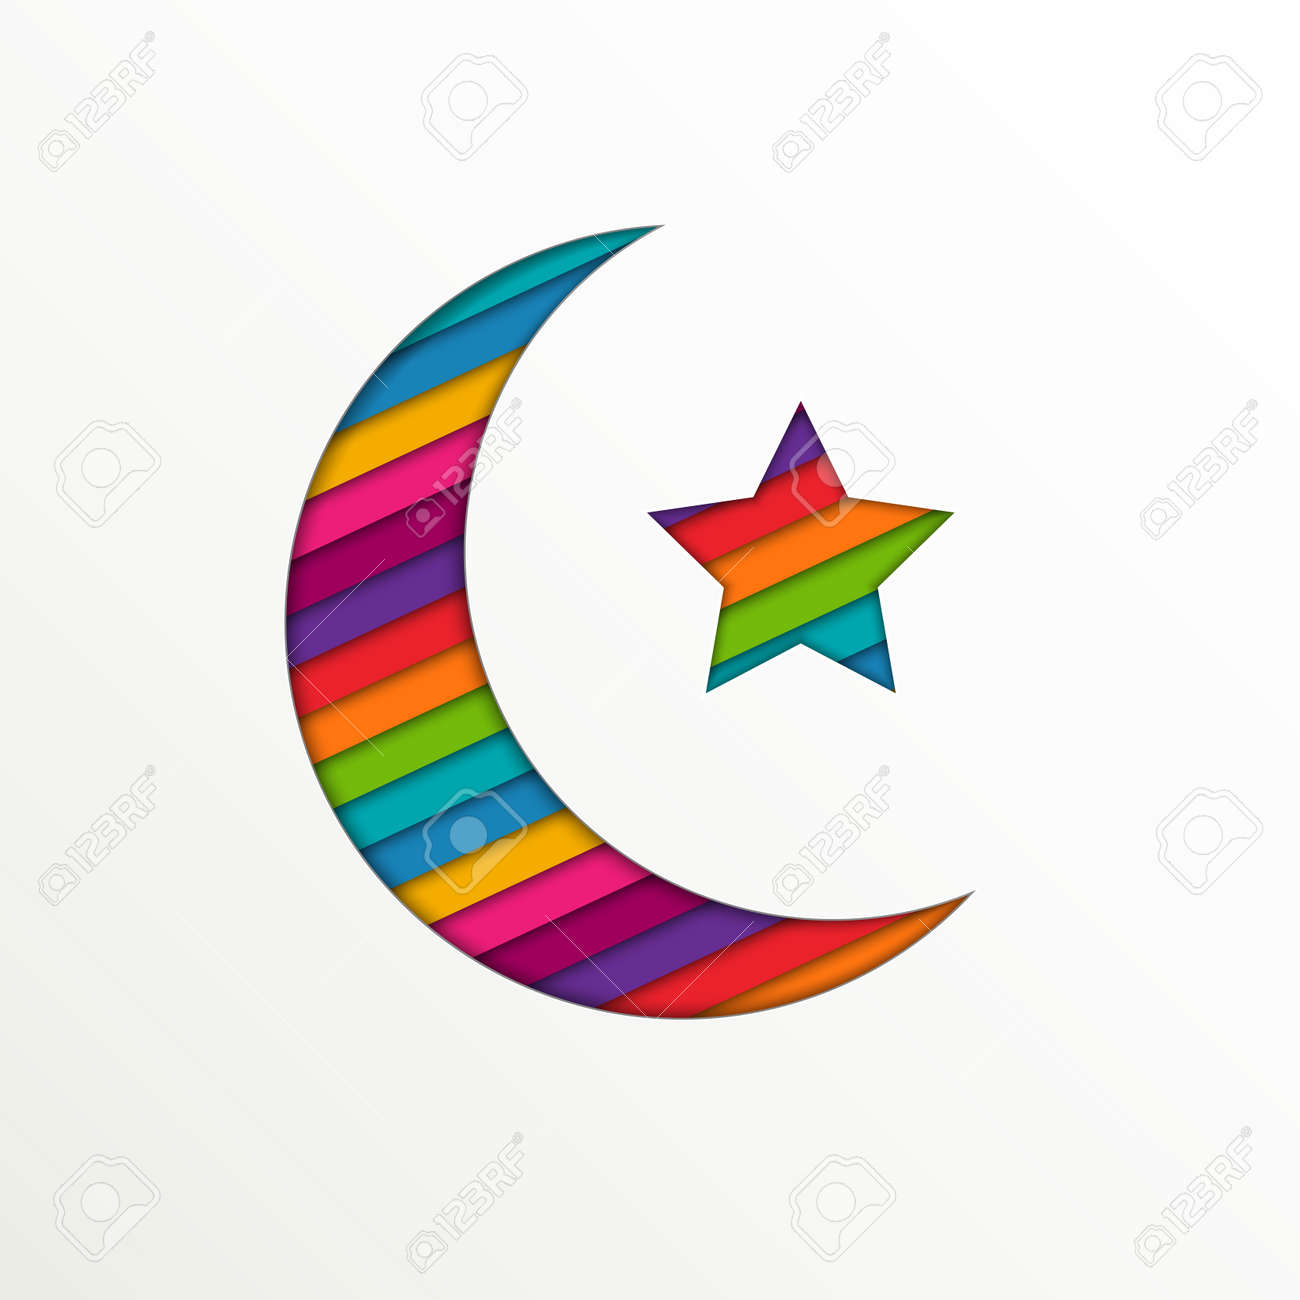 Colorful crescent moon and star on white background for holy colorful crescent moon and star on white background for holy month of muslim community ramadan kareem biocorpaavc Gallery